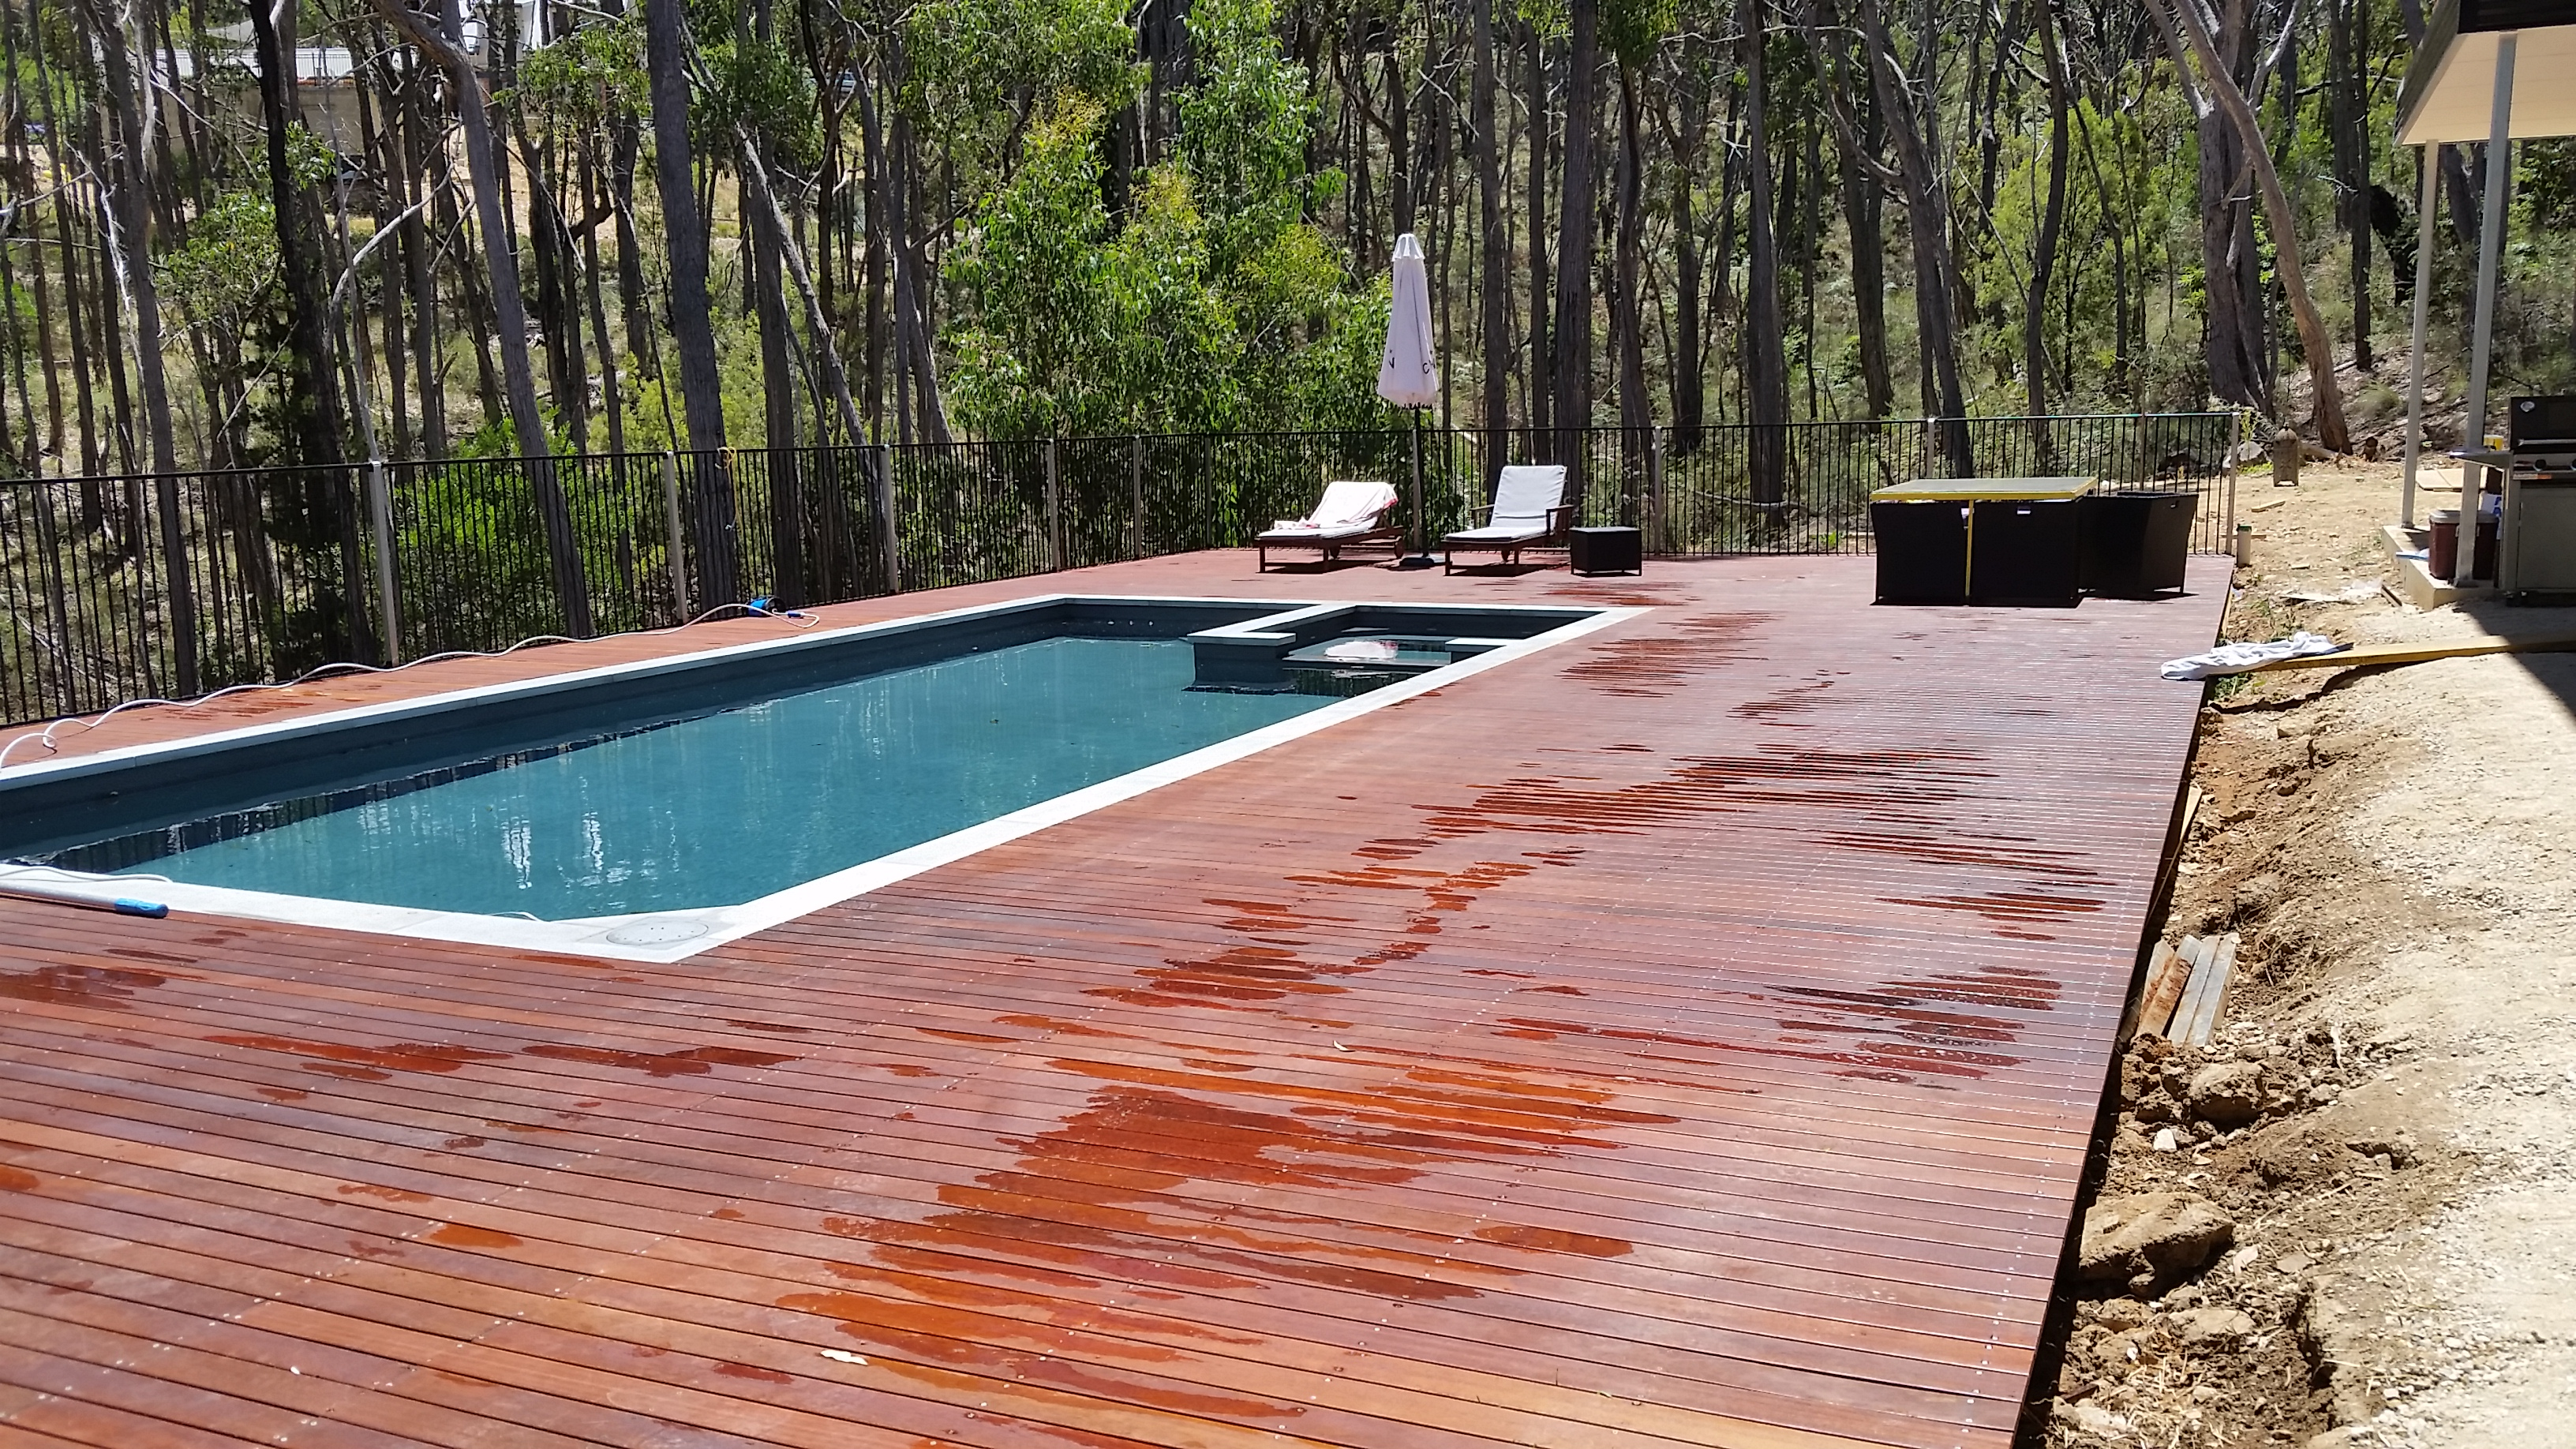 New Deck for this impressive pool